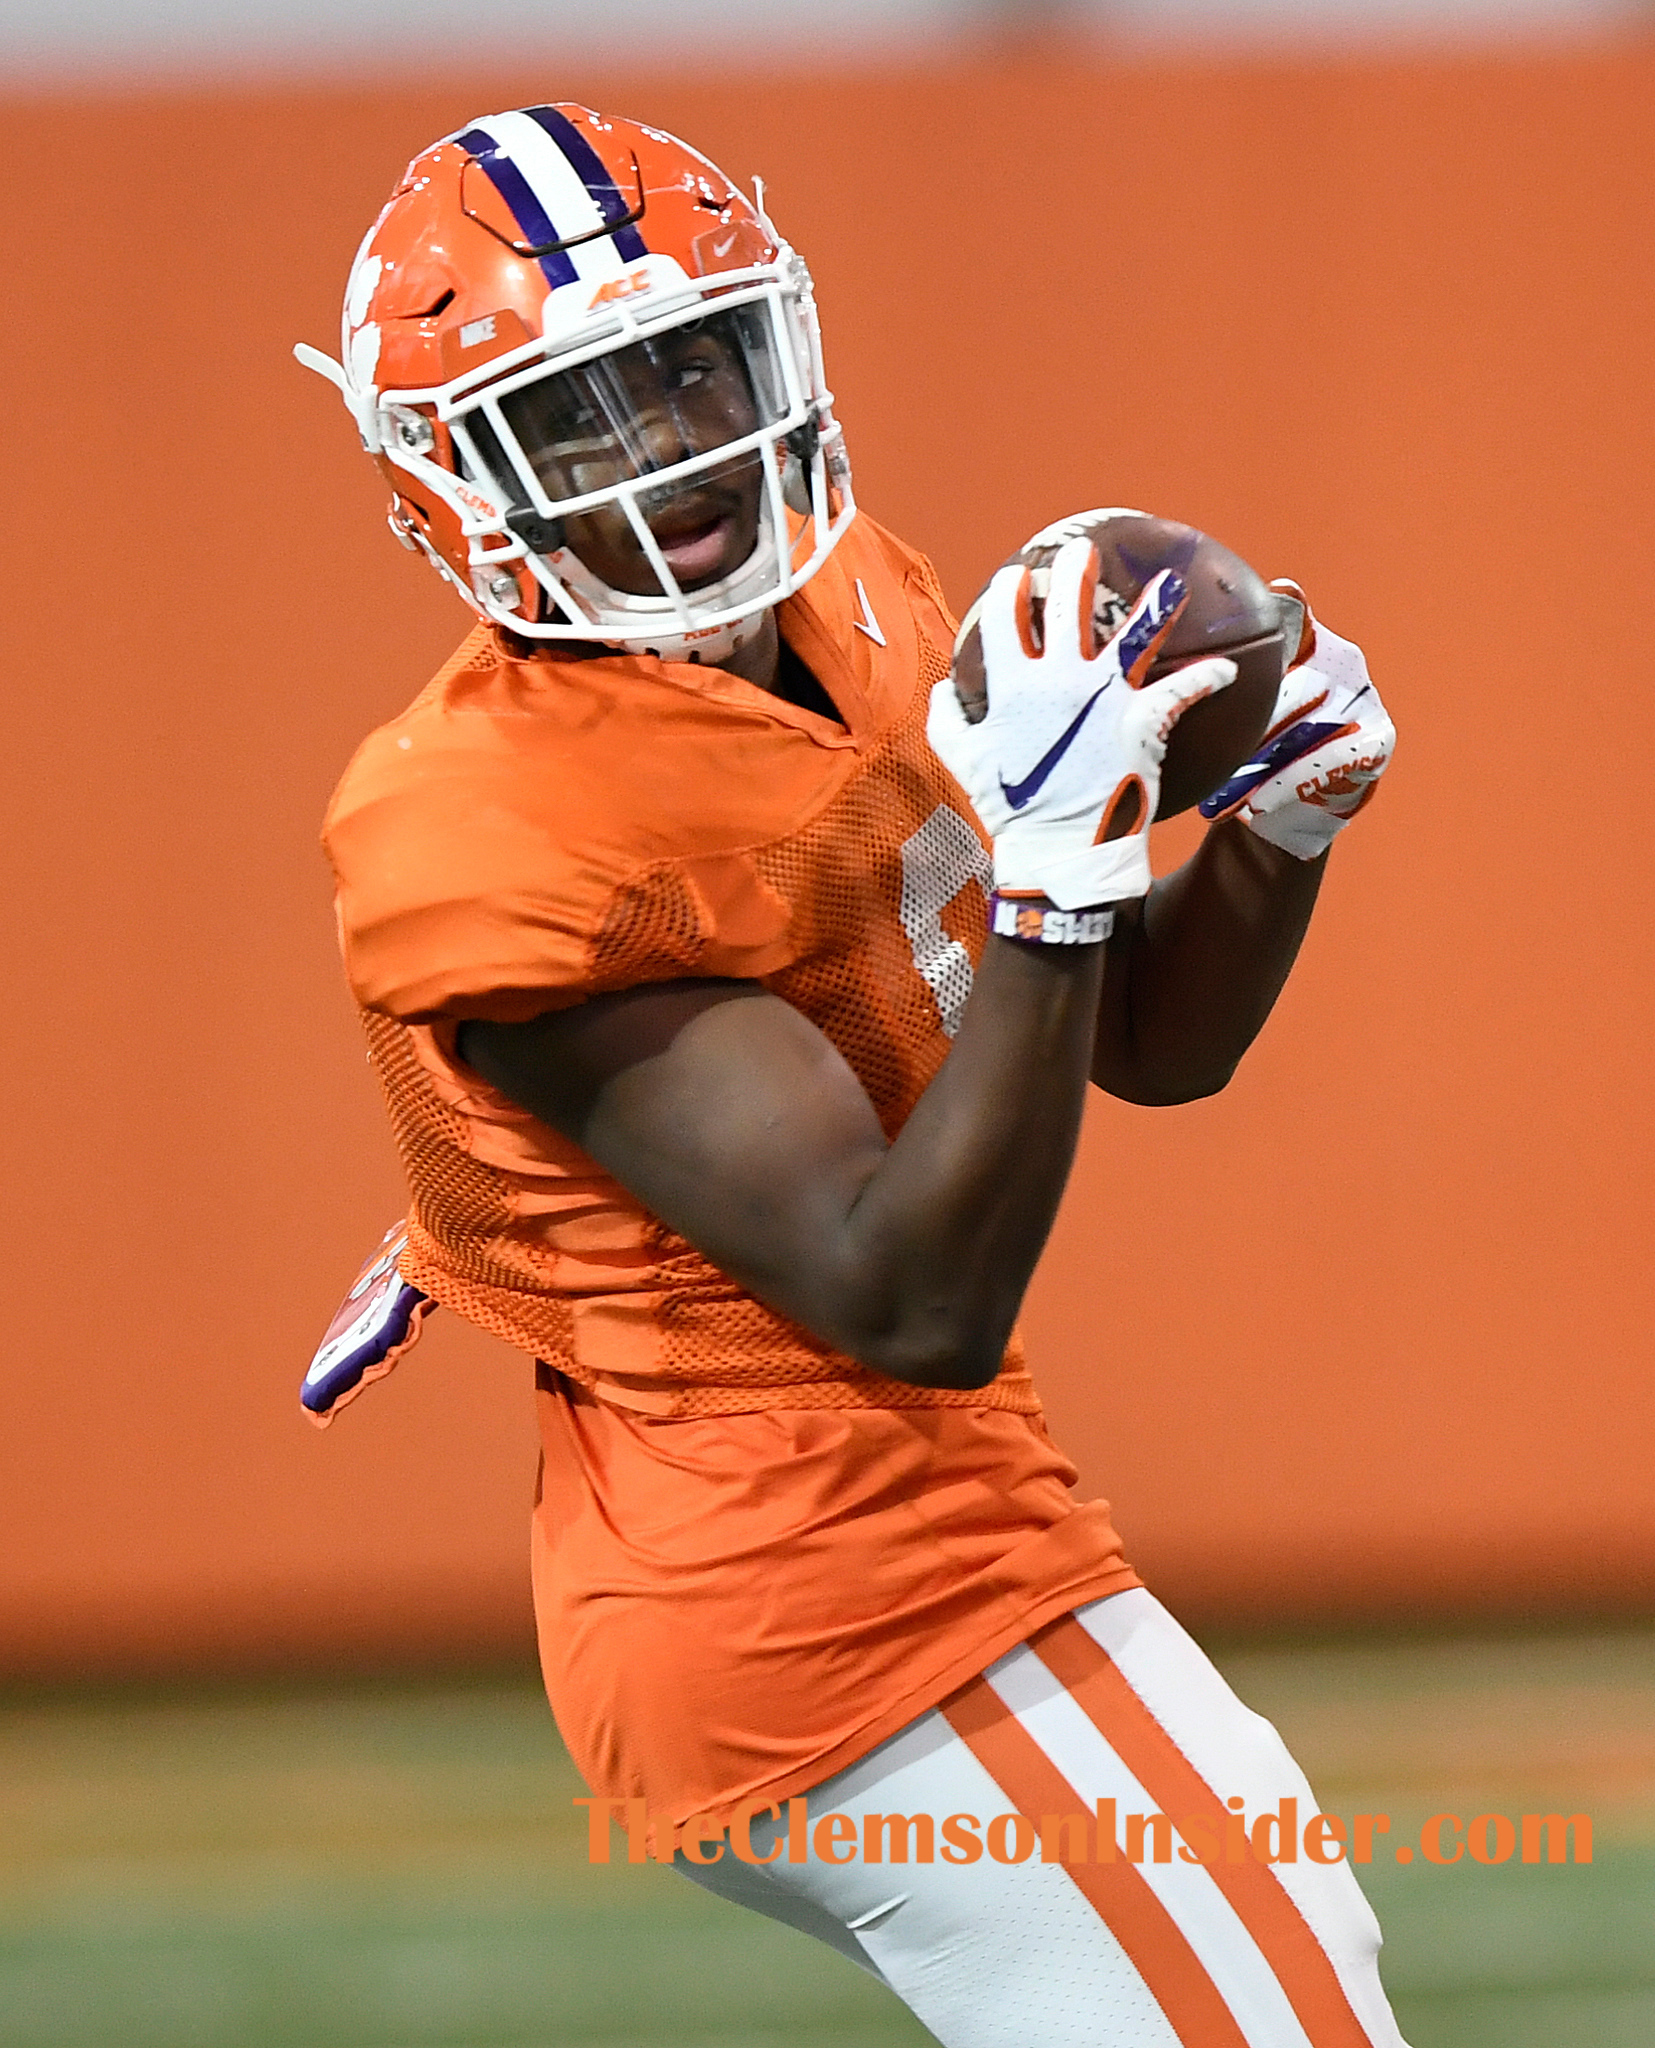 Clemson safety RJ Mickens (9) during the Tiger's spring practice Monday, March 2, 2020. Bart Boatwright/The Clemson Insider